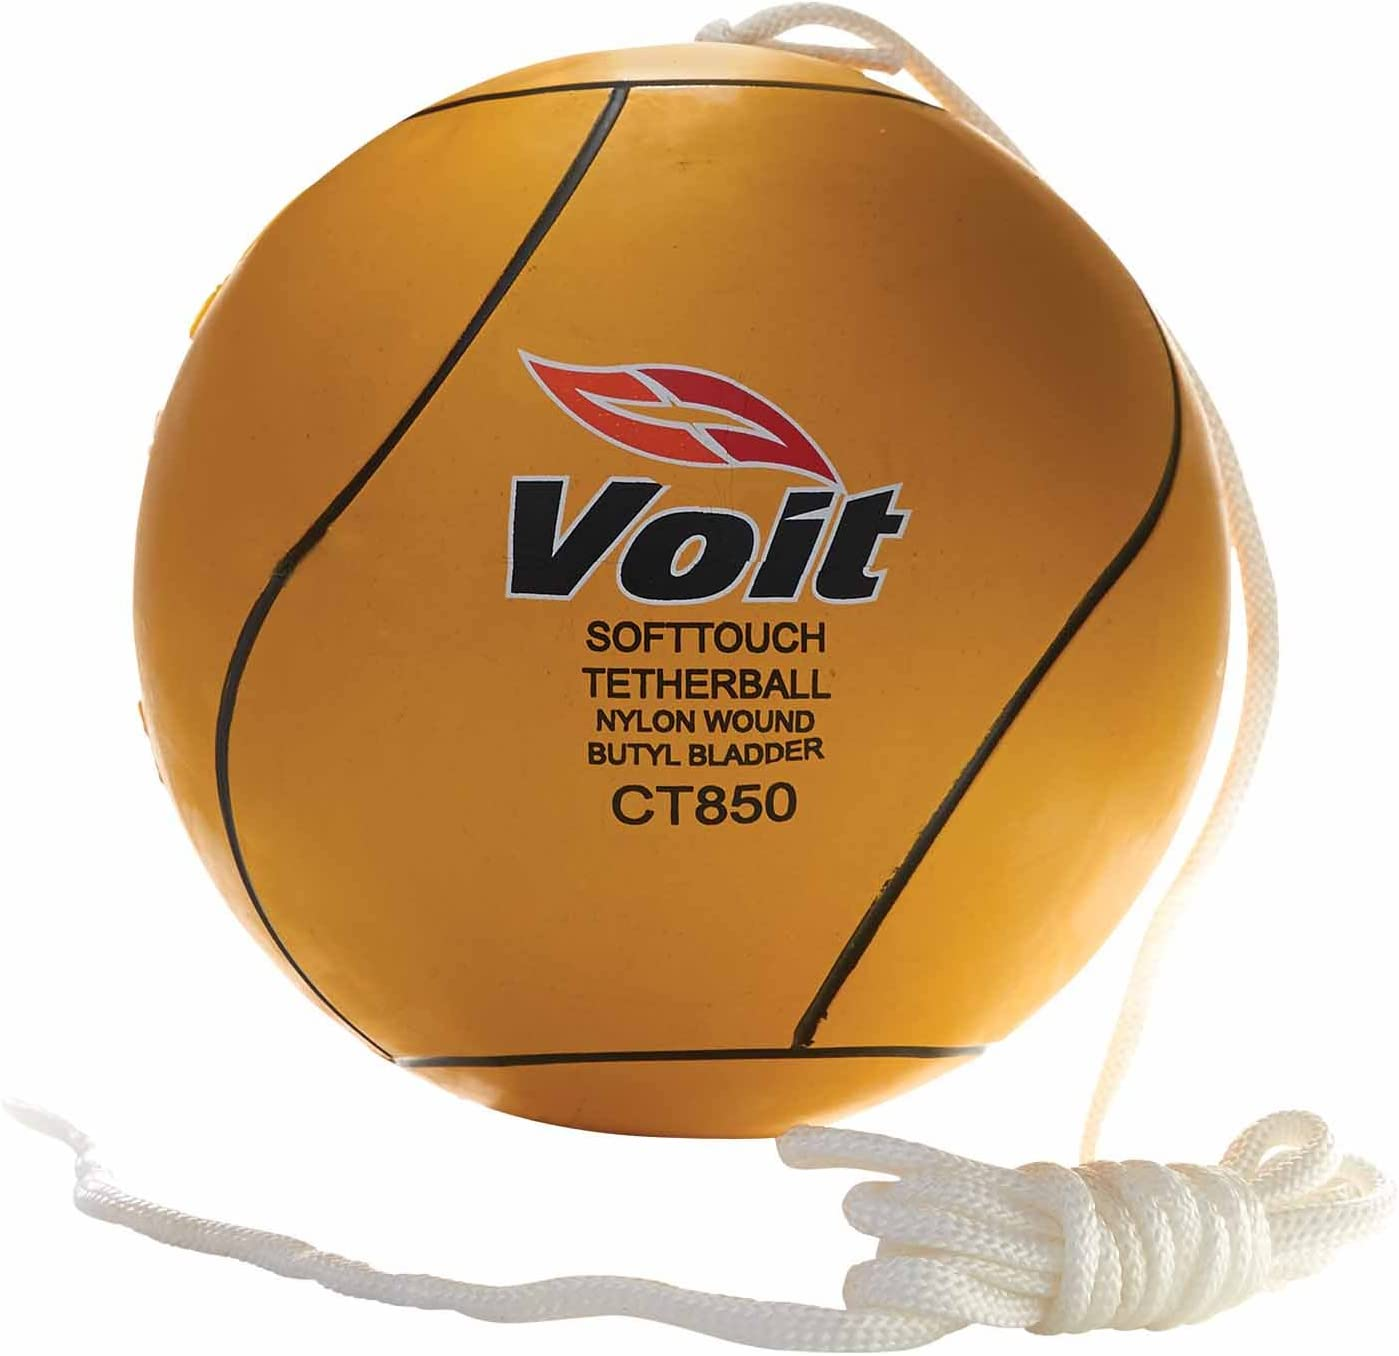 Voit Tetherball Rubber Cover : Tetherball Equipment : Sports & Outdoors